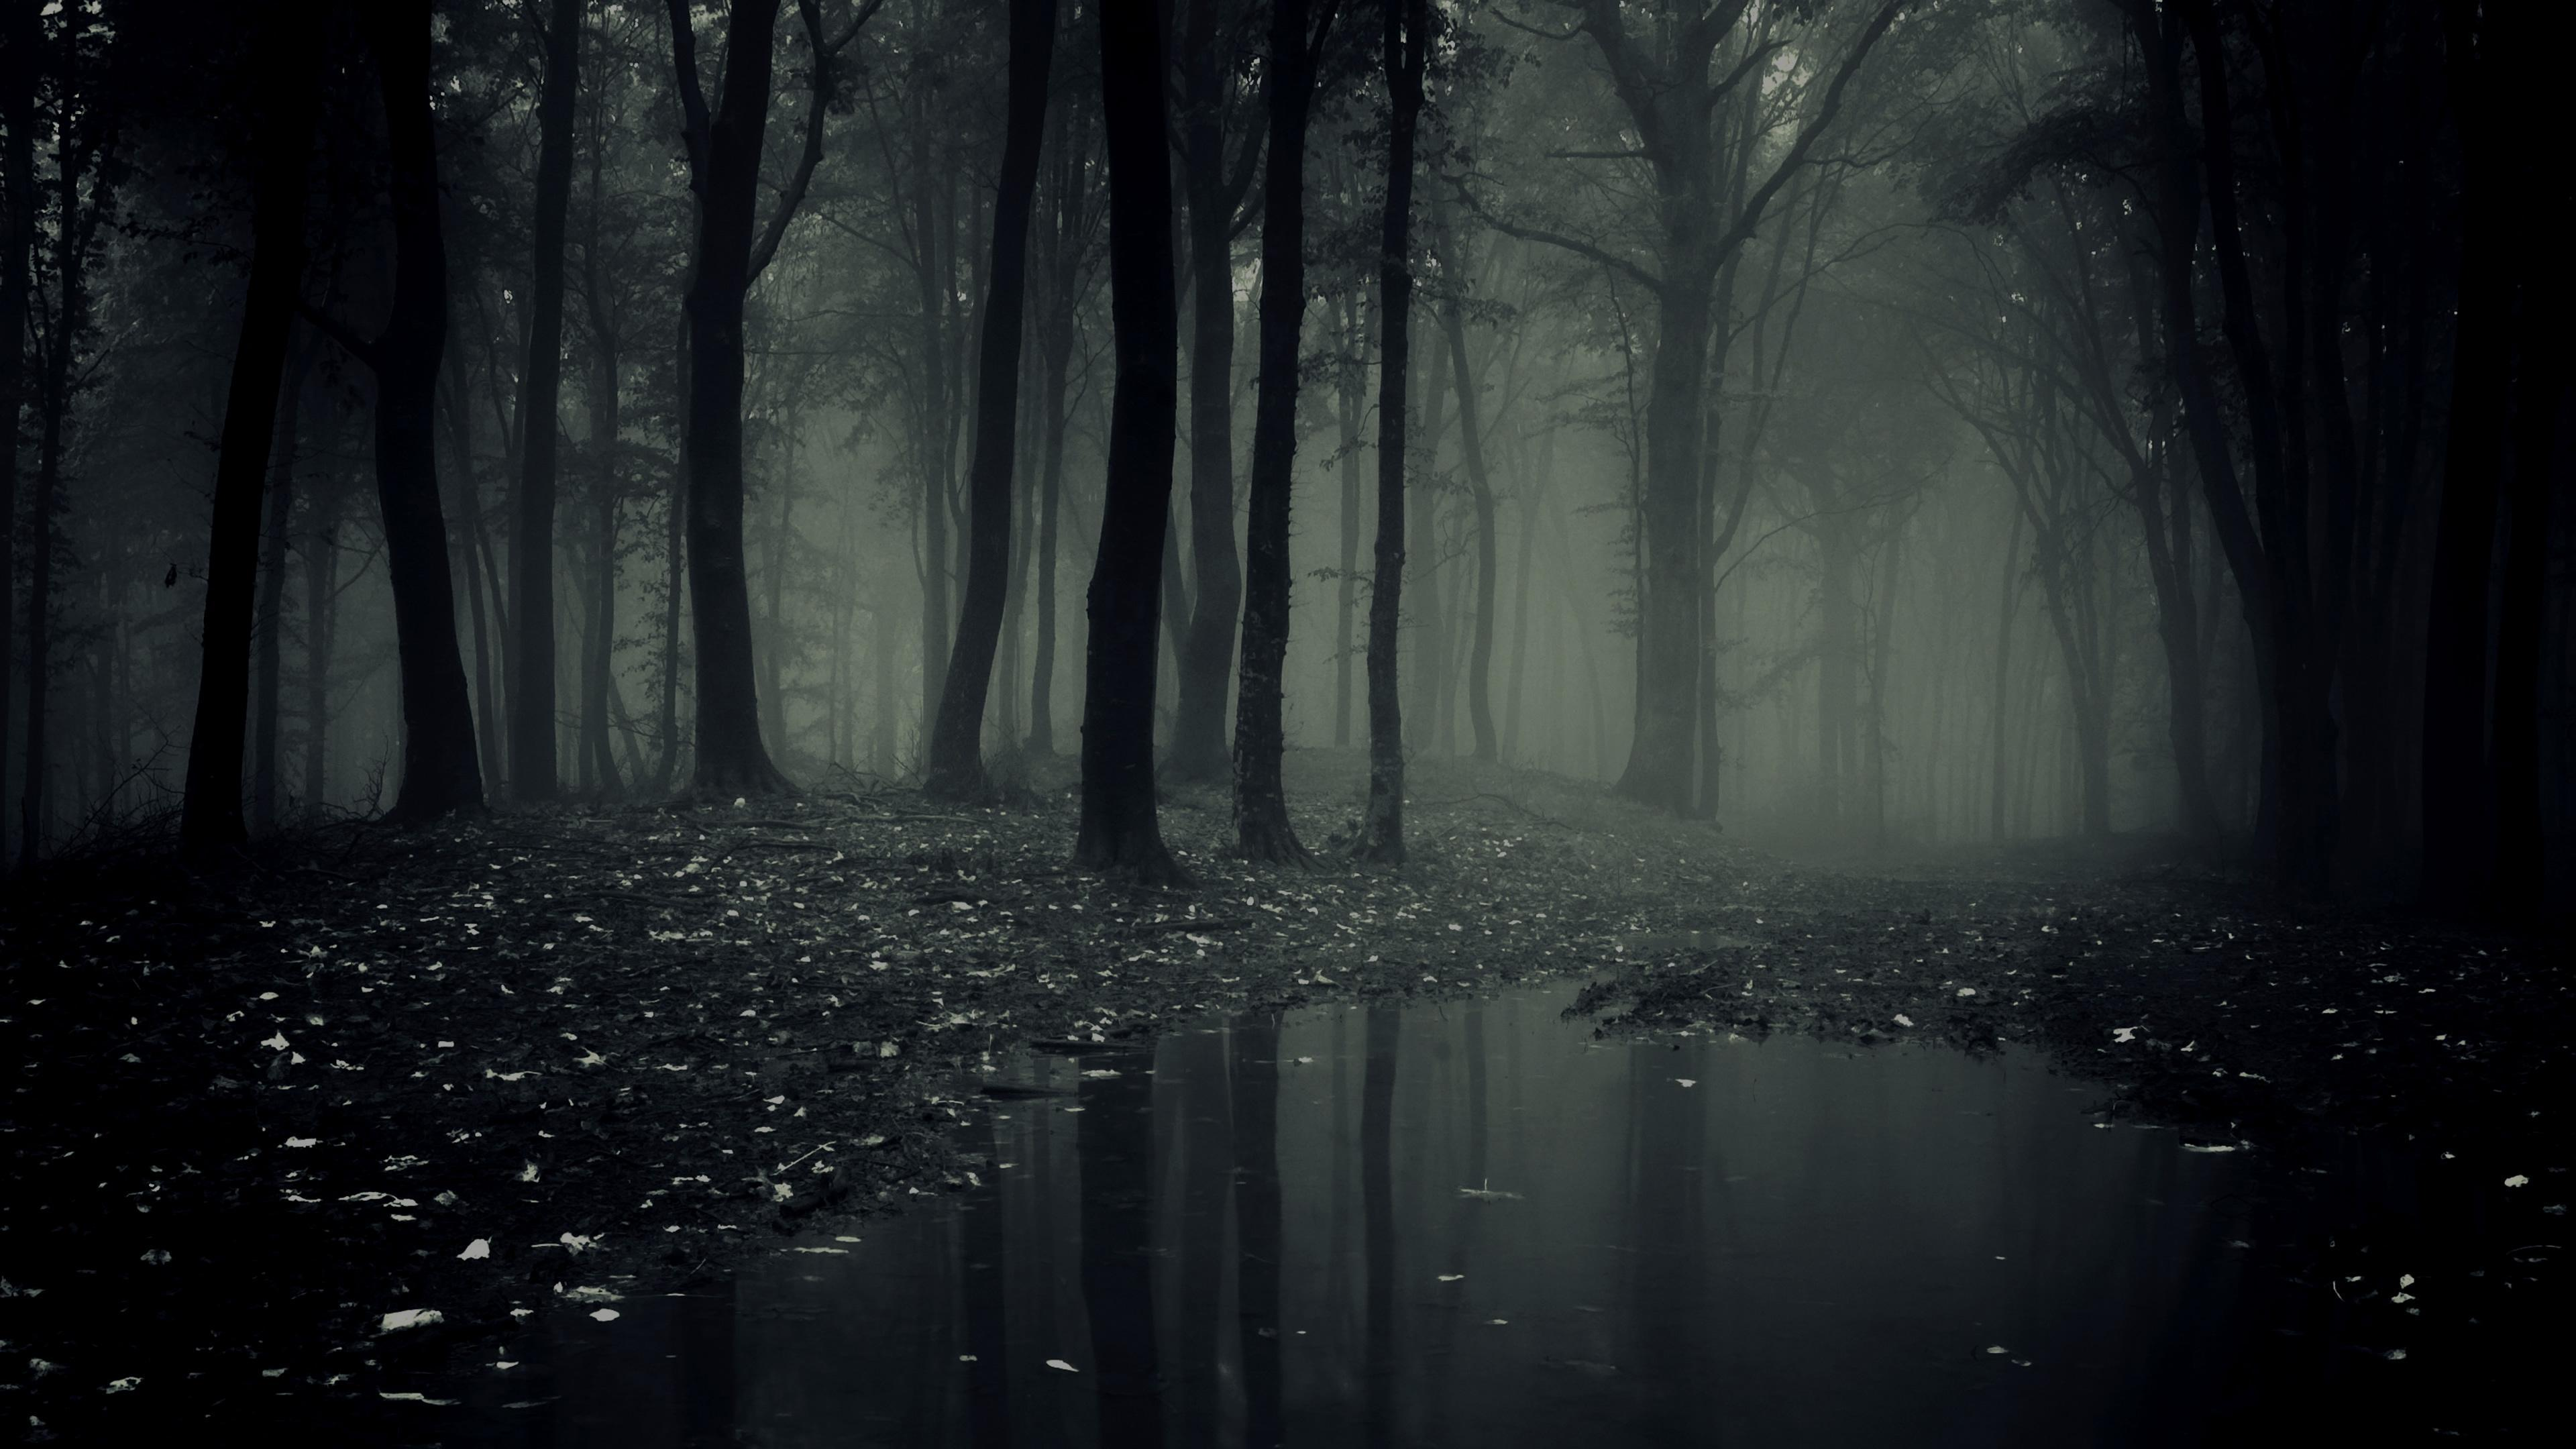 Dark Forest Live Wallpaper for Android - APK Download